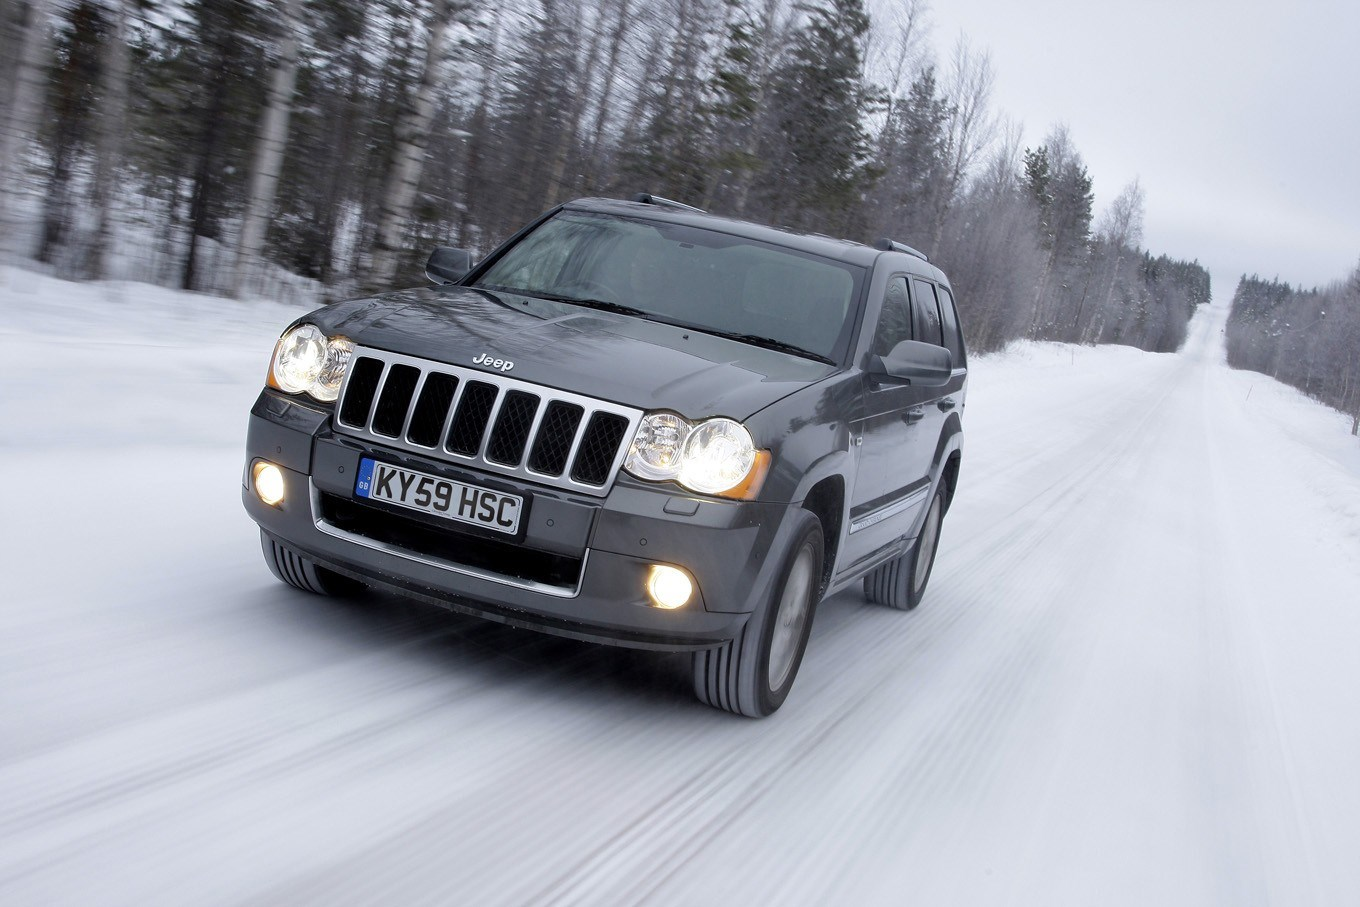 Jeep Grand Cherokee Station Wagon Review 2005 2010 Parkers How Much Is It To Insure